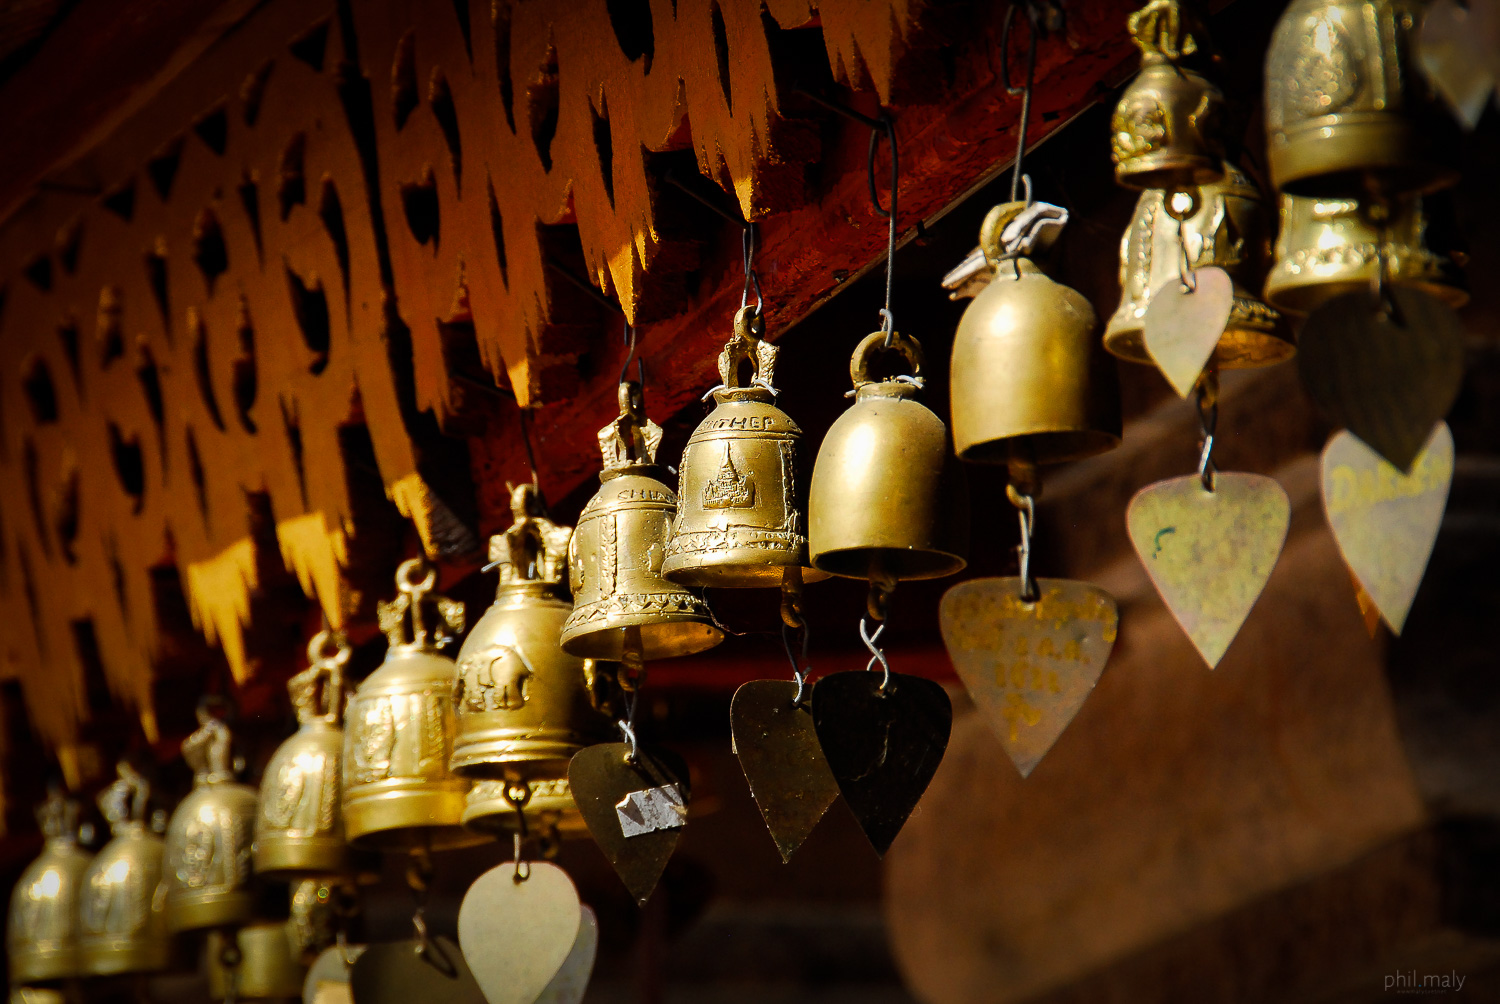 Row of worshipping bells in a Buddhist temple